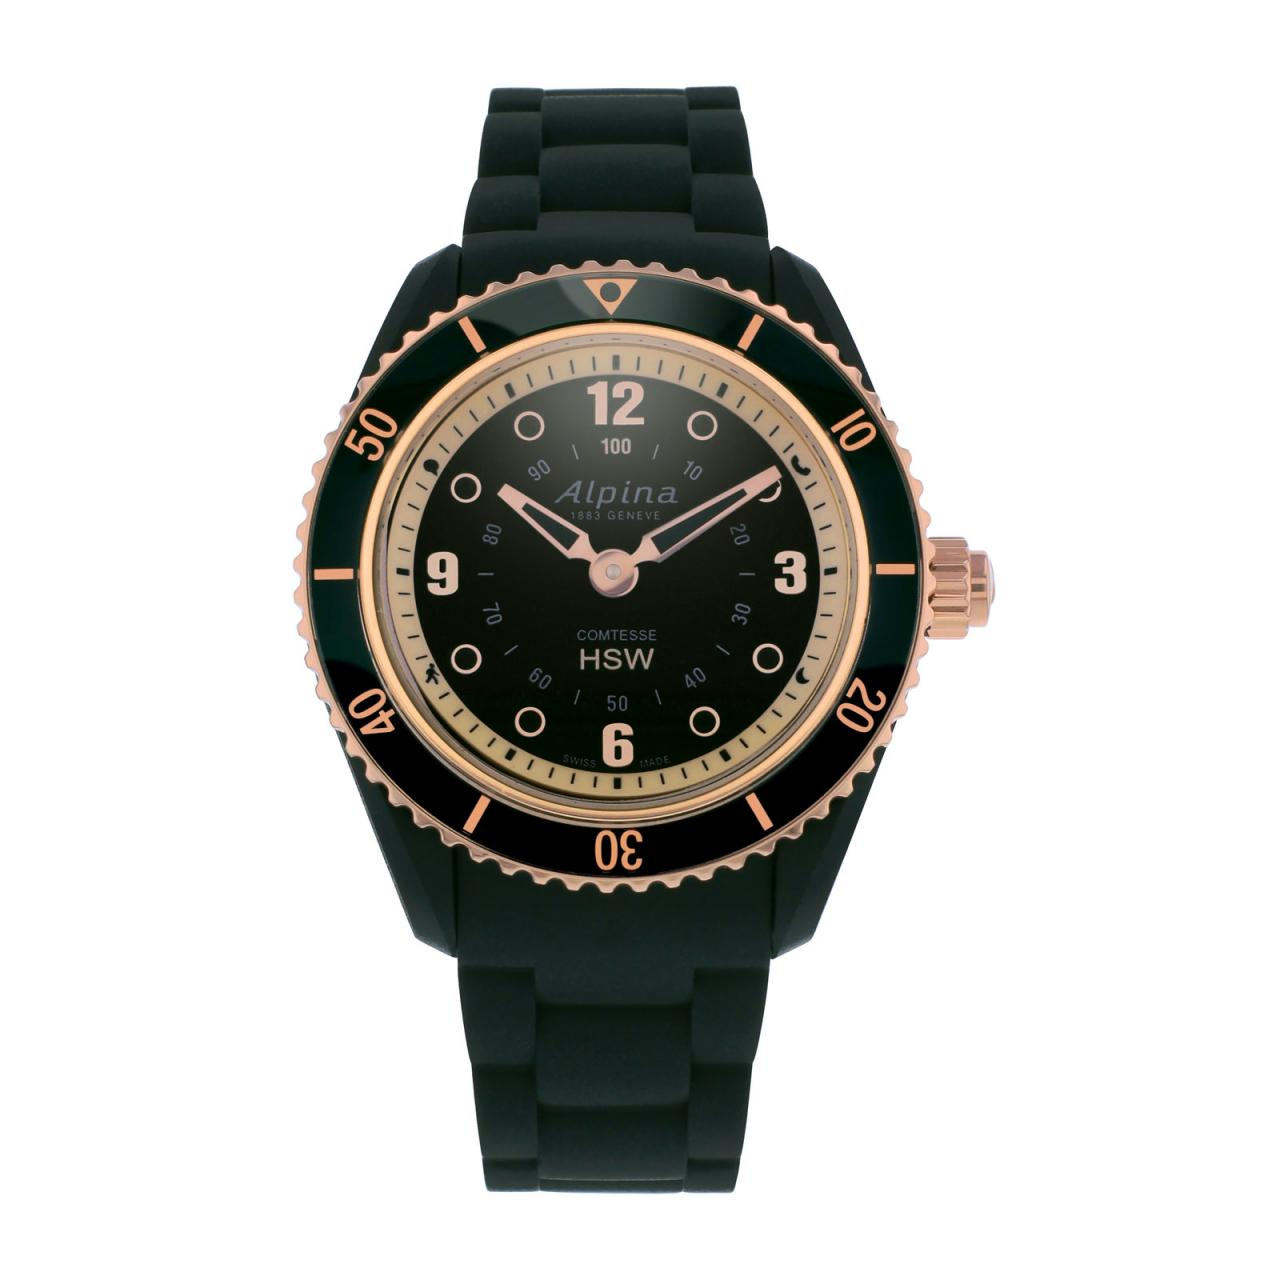 Gagnez une Alpina Watch Dealers Denver Replica Contesse Horological Smartwatch